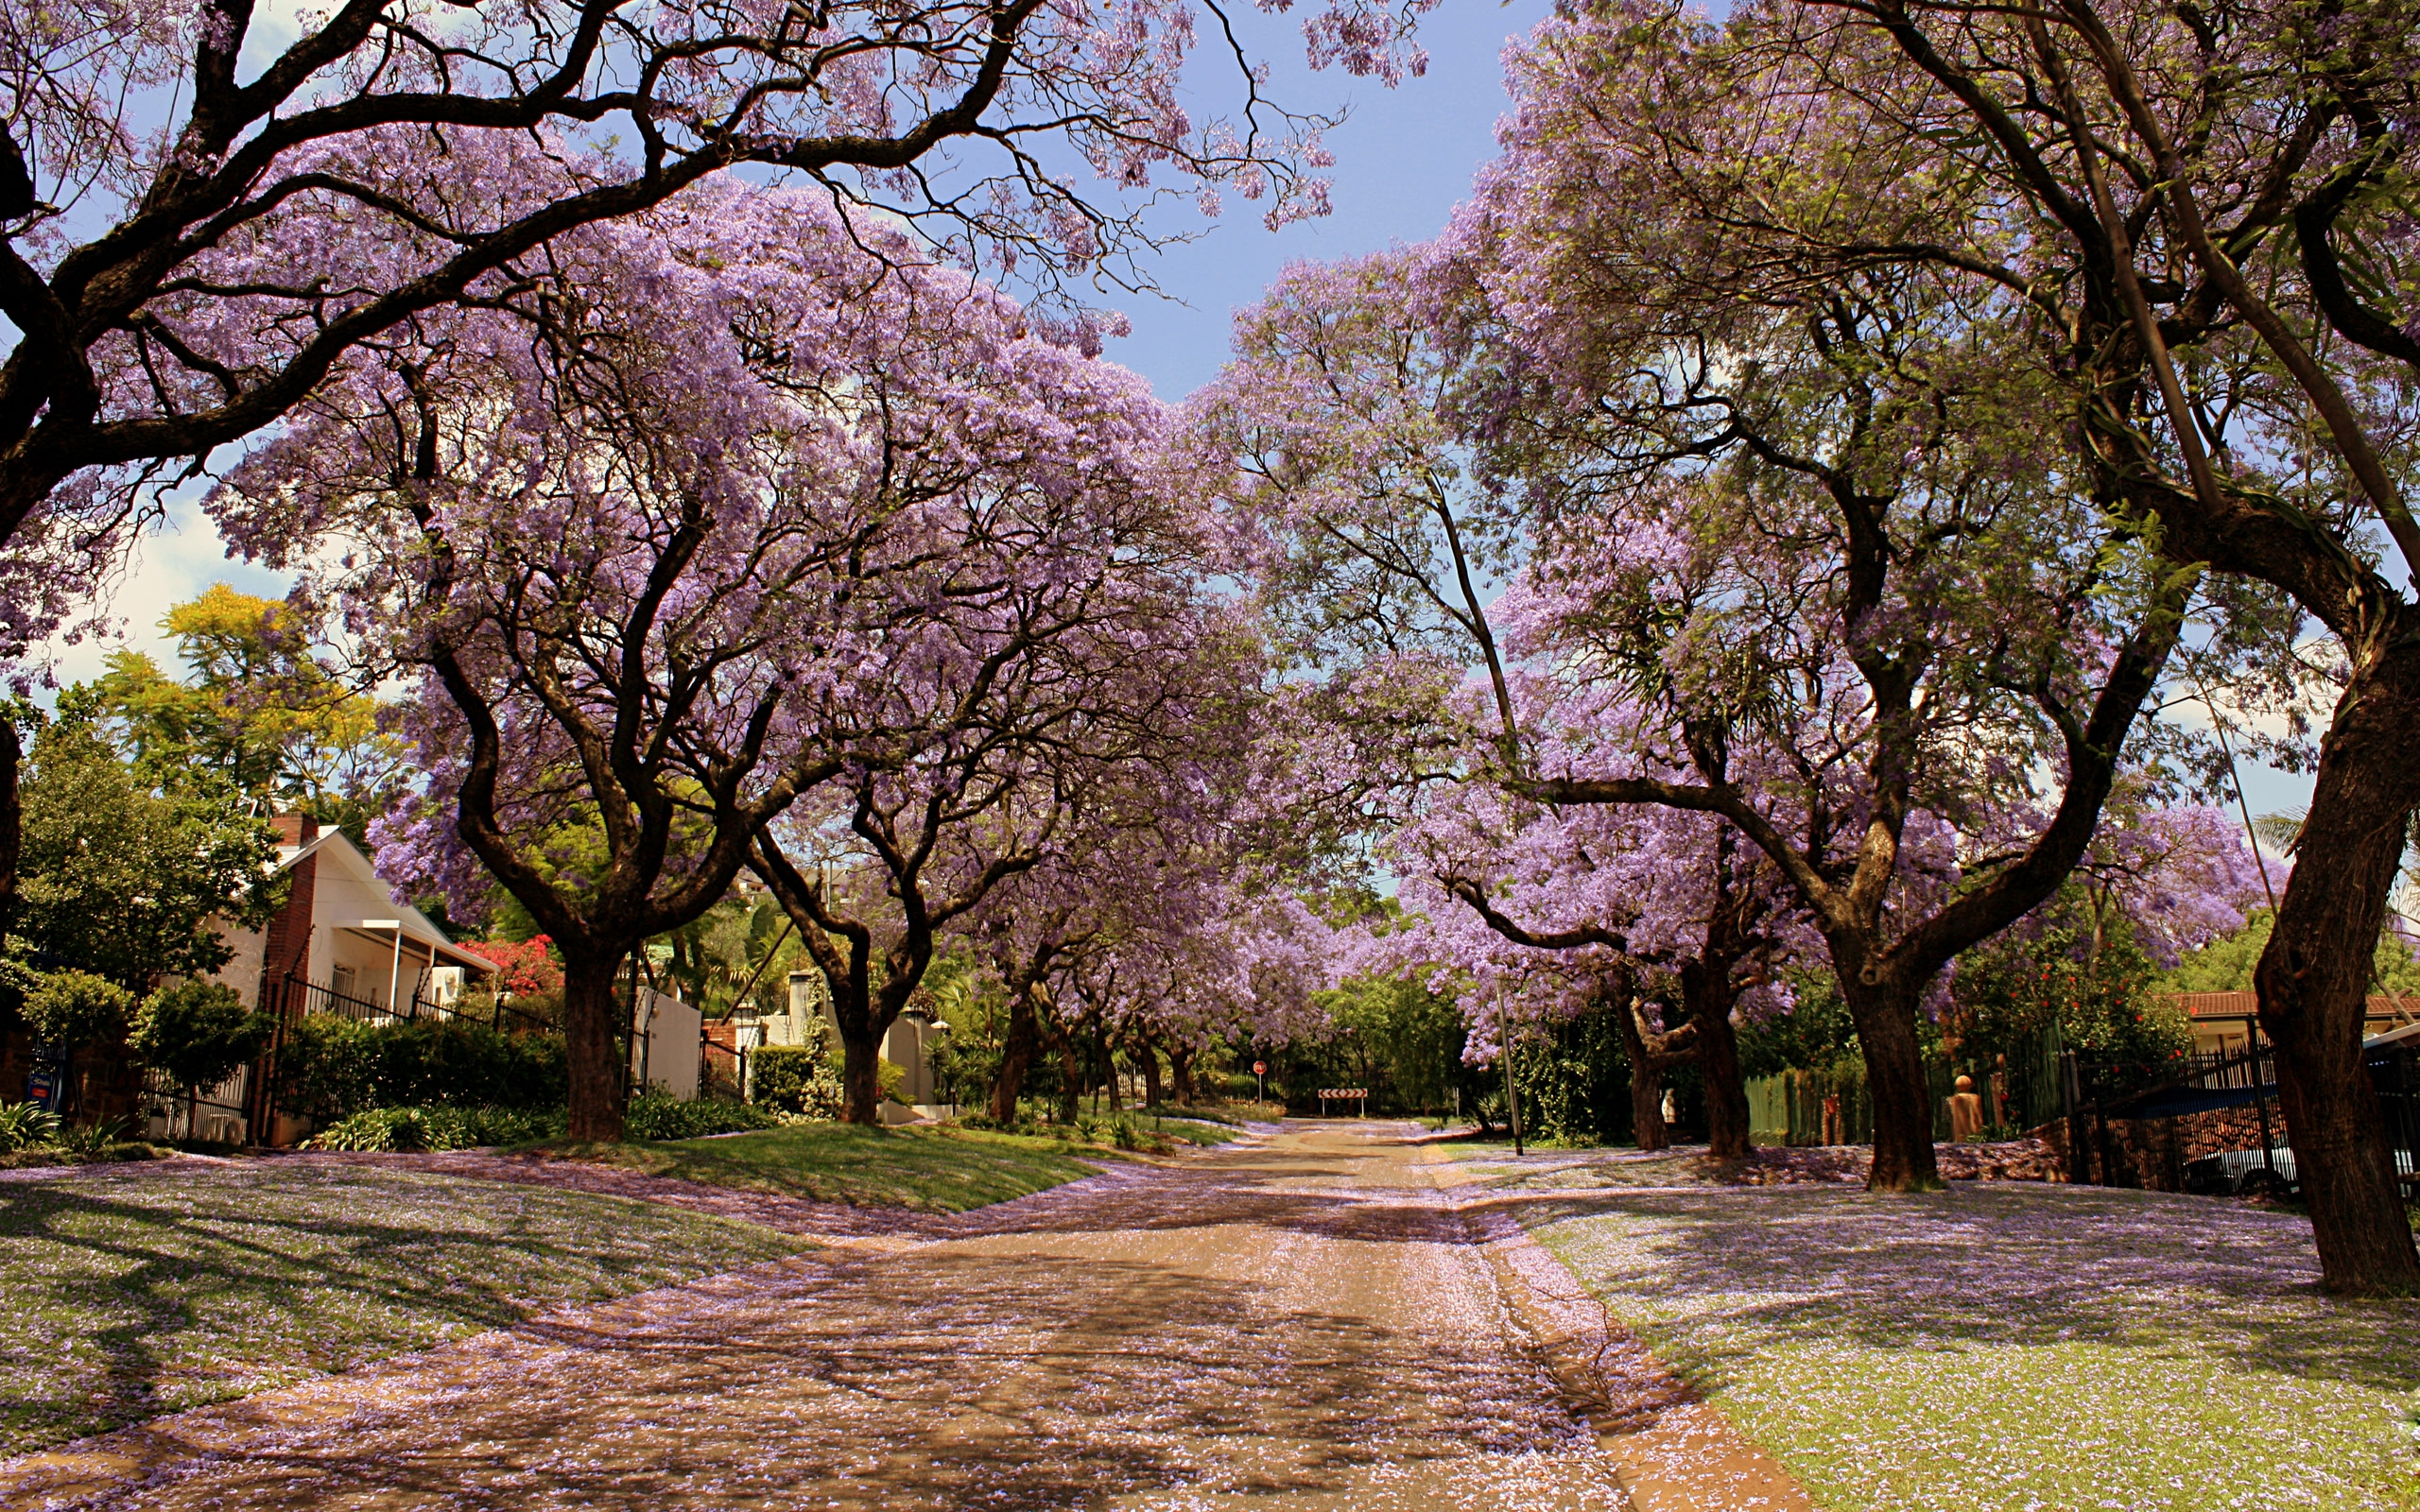 Sakura Trees Lining The Street HD Wallpaper